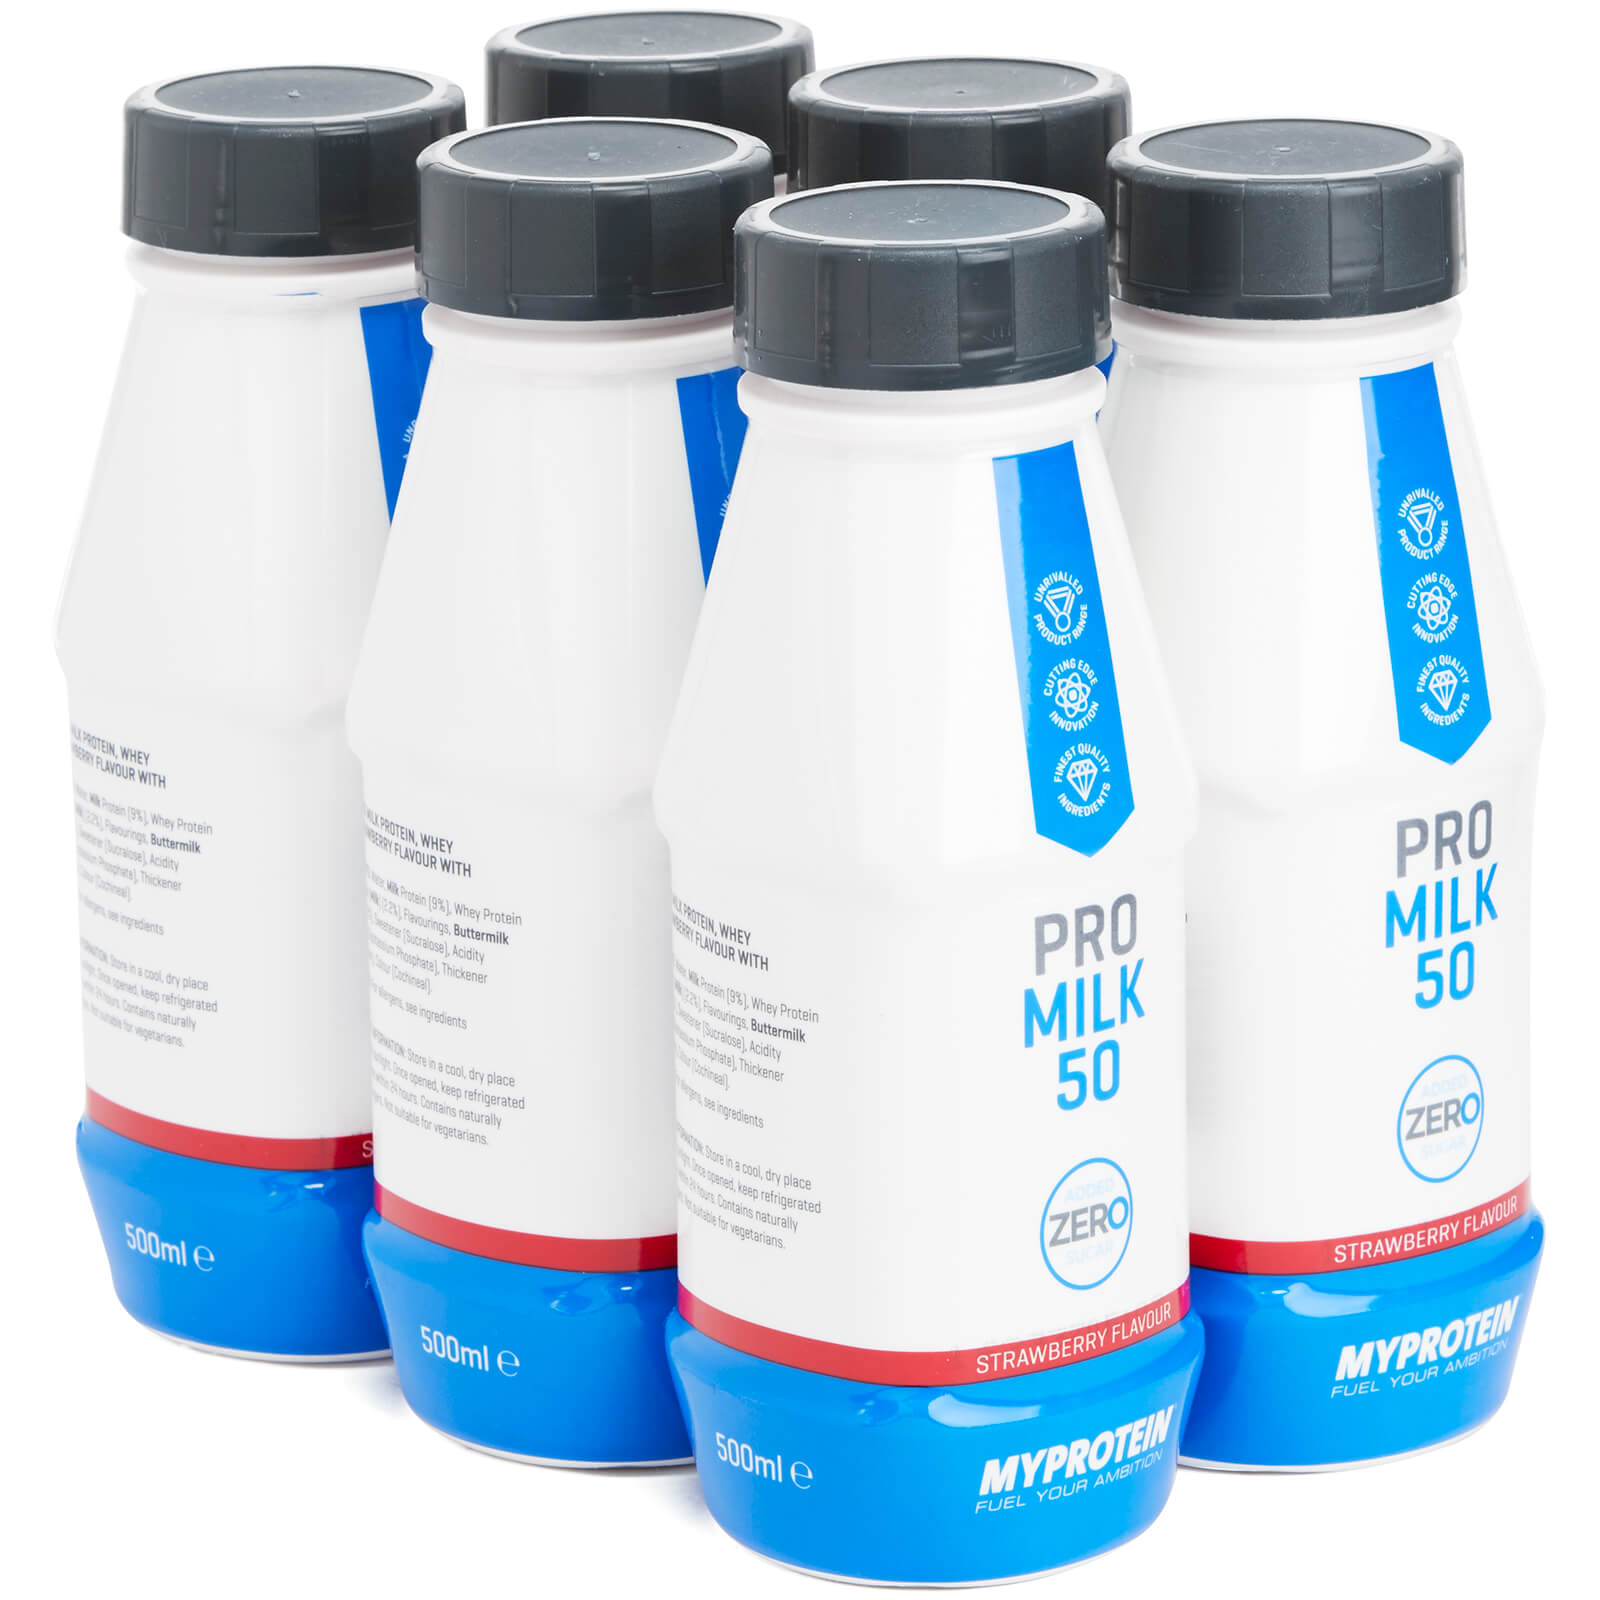 Pro Milk 50 Zero, Strawberry, 6 x 500ml